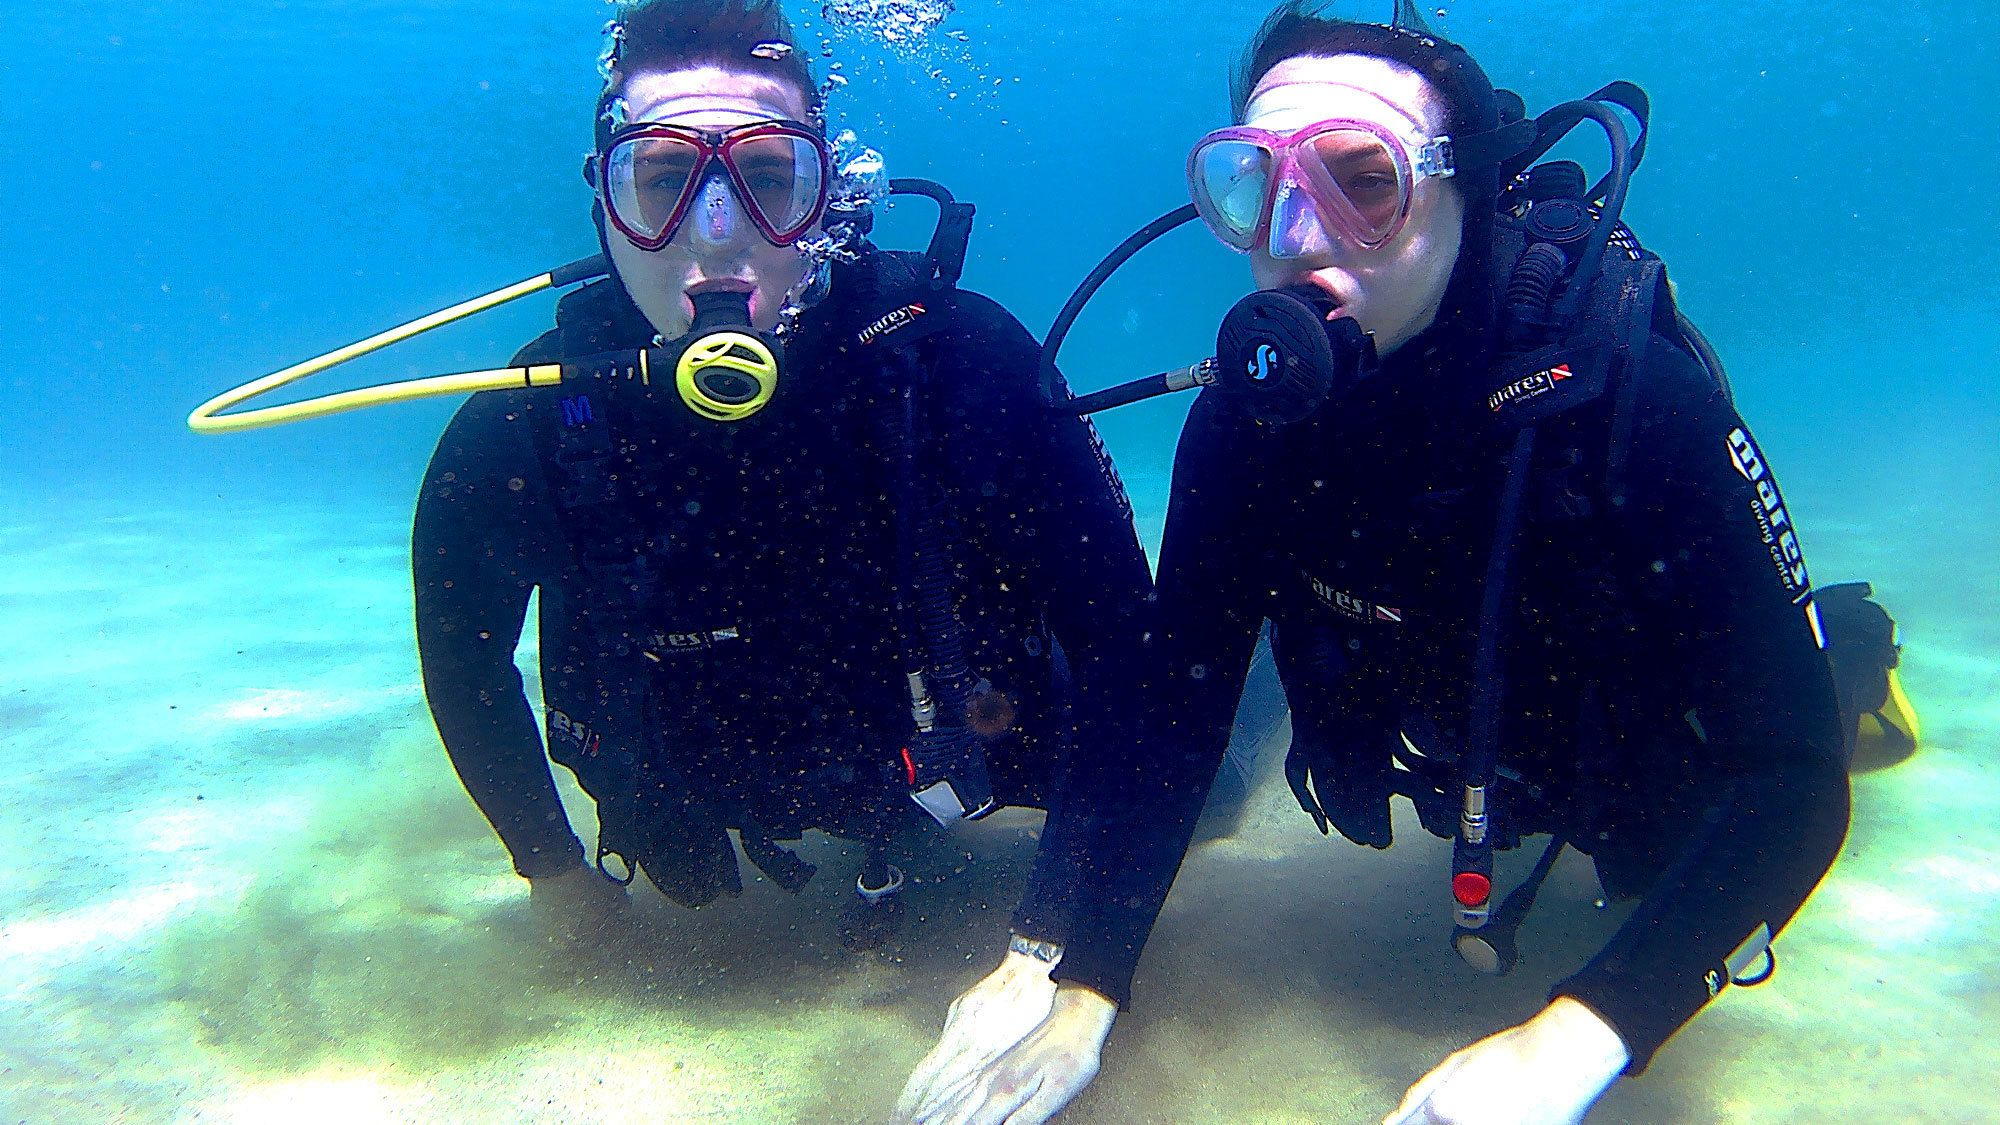 Two divers kneeling on ocean bottom in Lanzarote